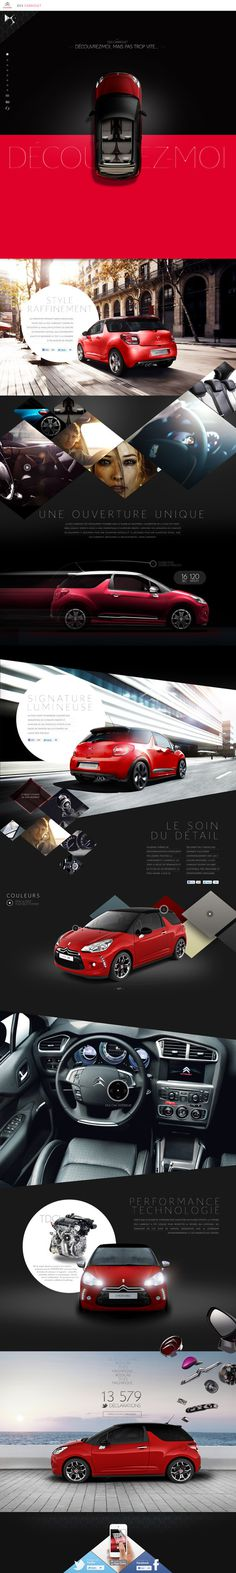 Citroen DS3 Cab on Behance #car